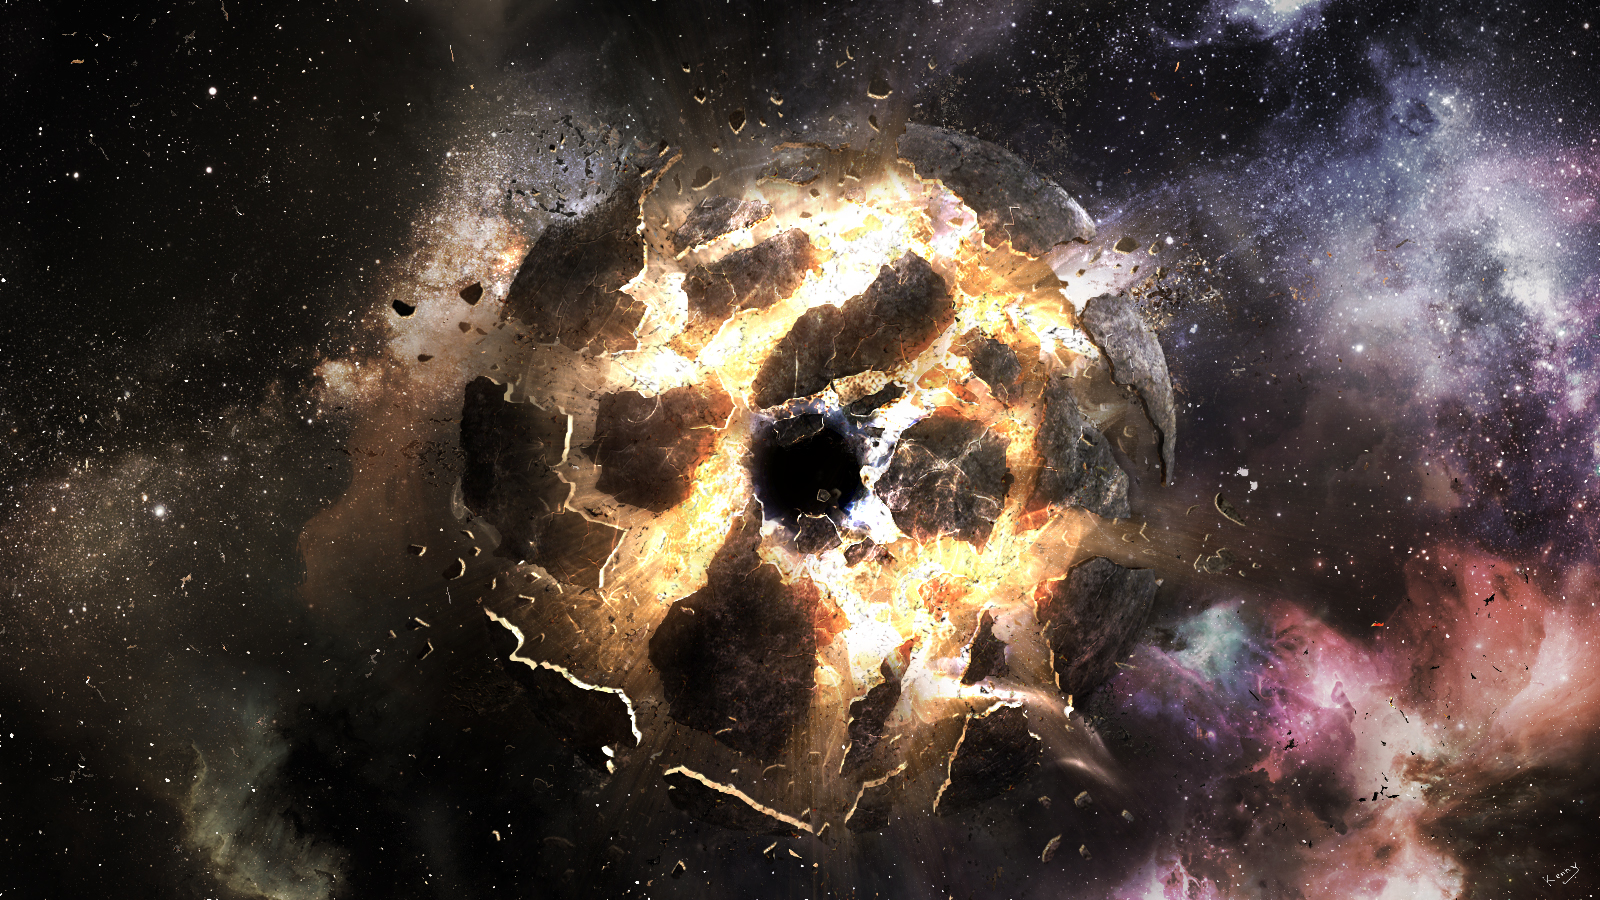 exploding_planet_by_bftws-d5lybes.jpg